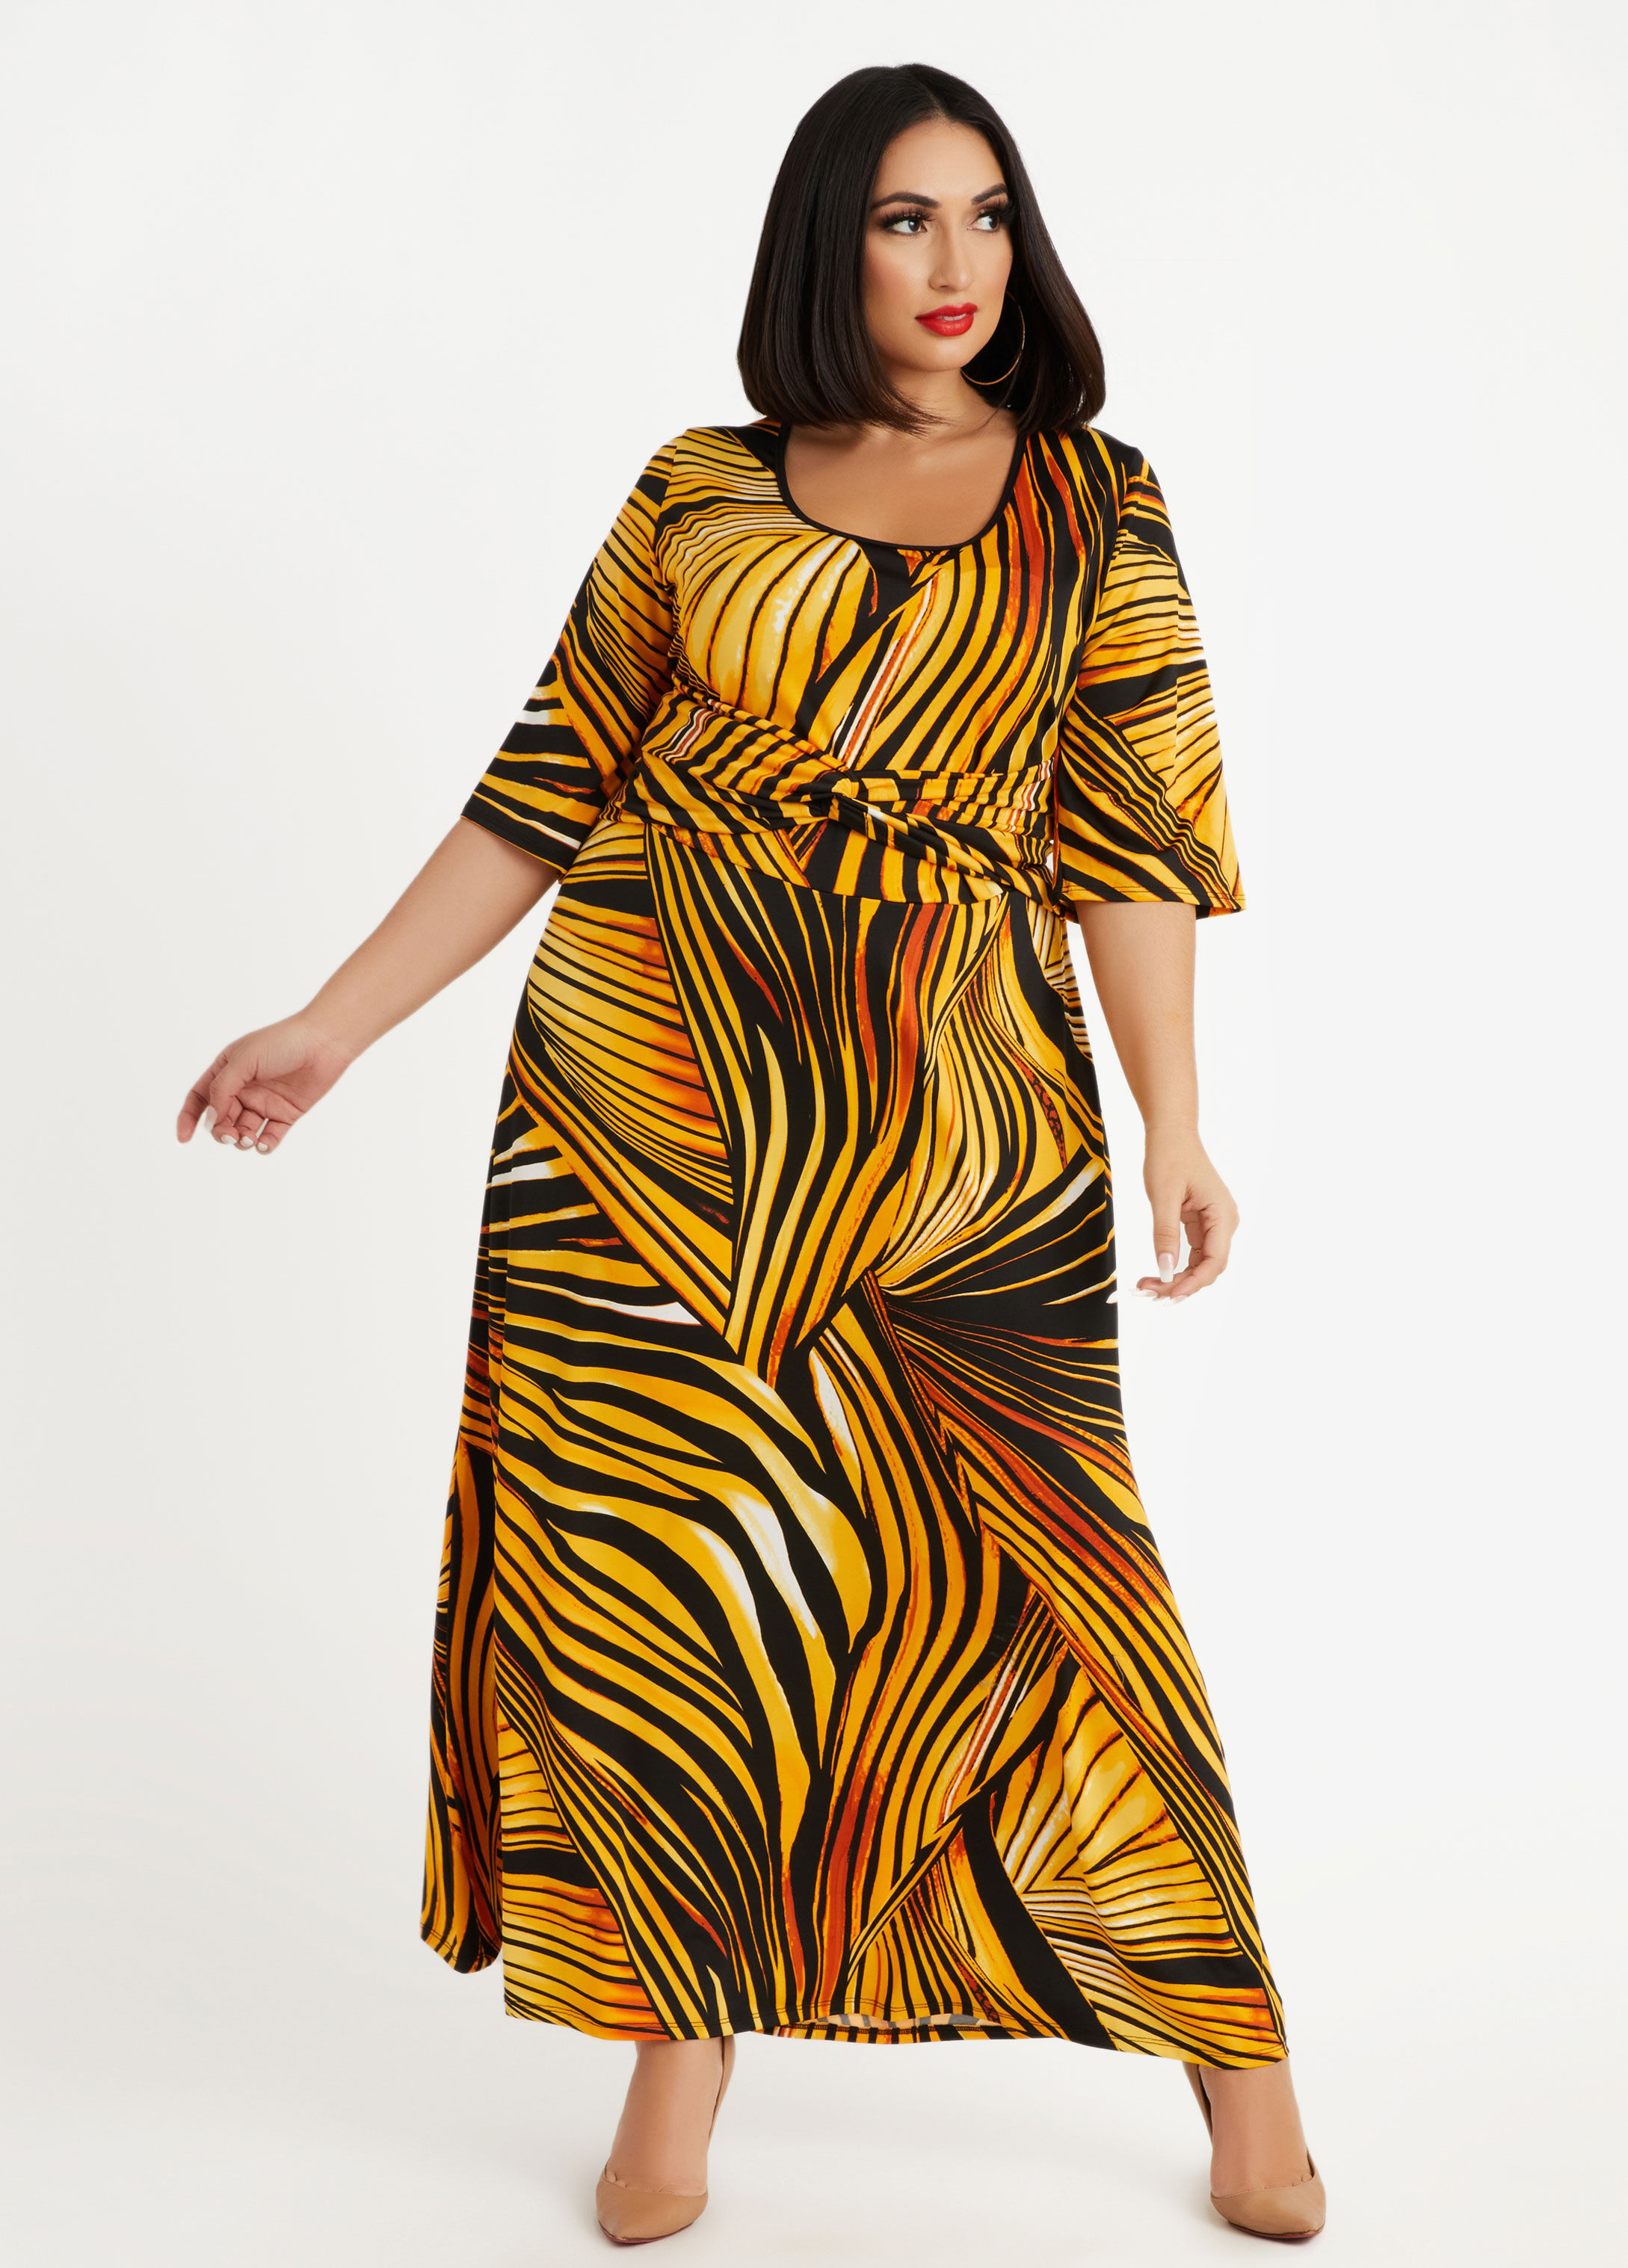 Abstract Knot Front Knit Maxi Dress $35.70 @ Ashley Stewart